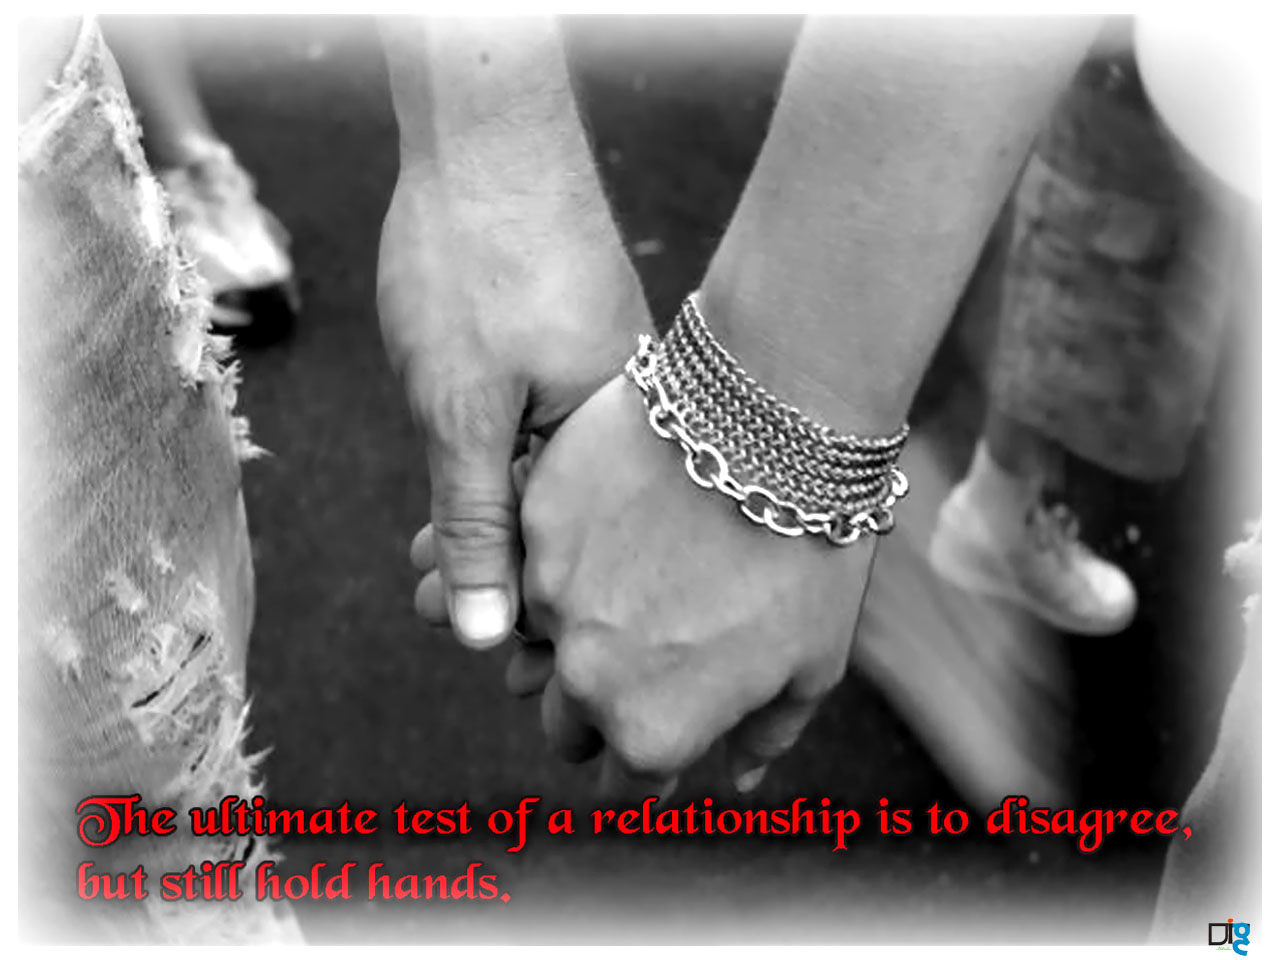 ... Malayalam Friendship Quotes For Facebook Friends quotes wallpaper Quotes About Friendship Cover Photos